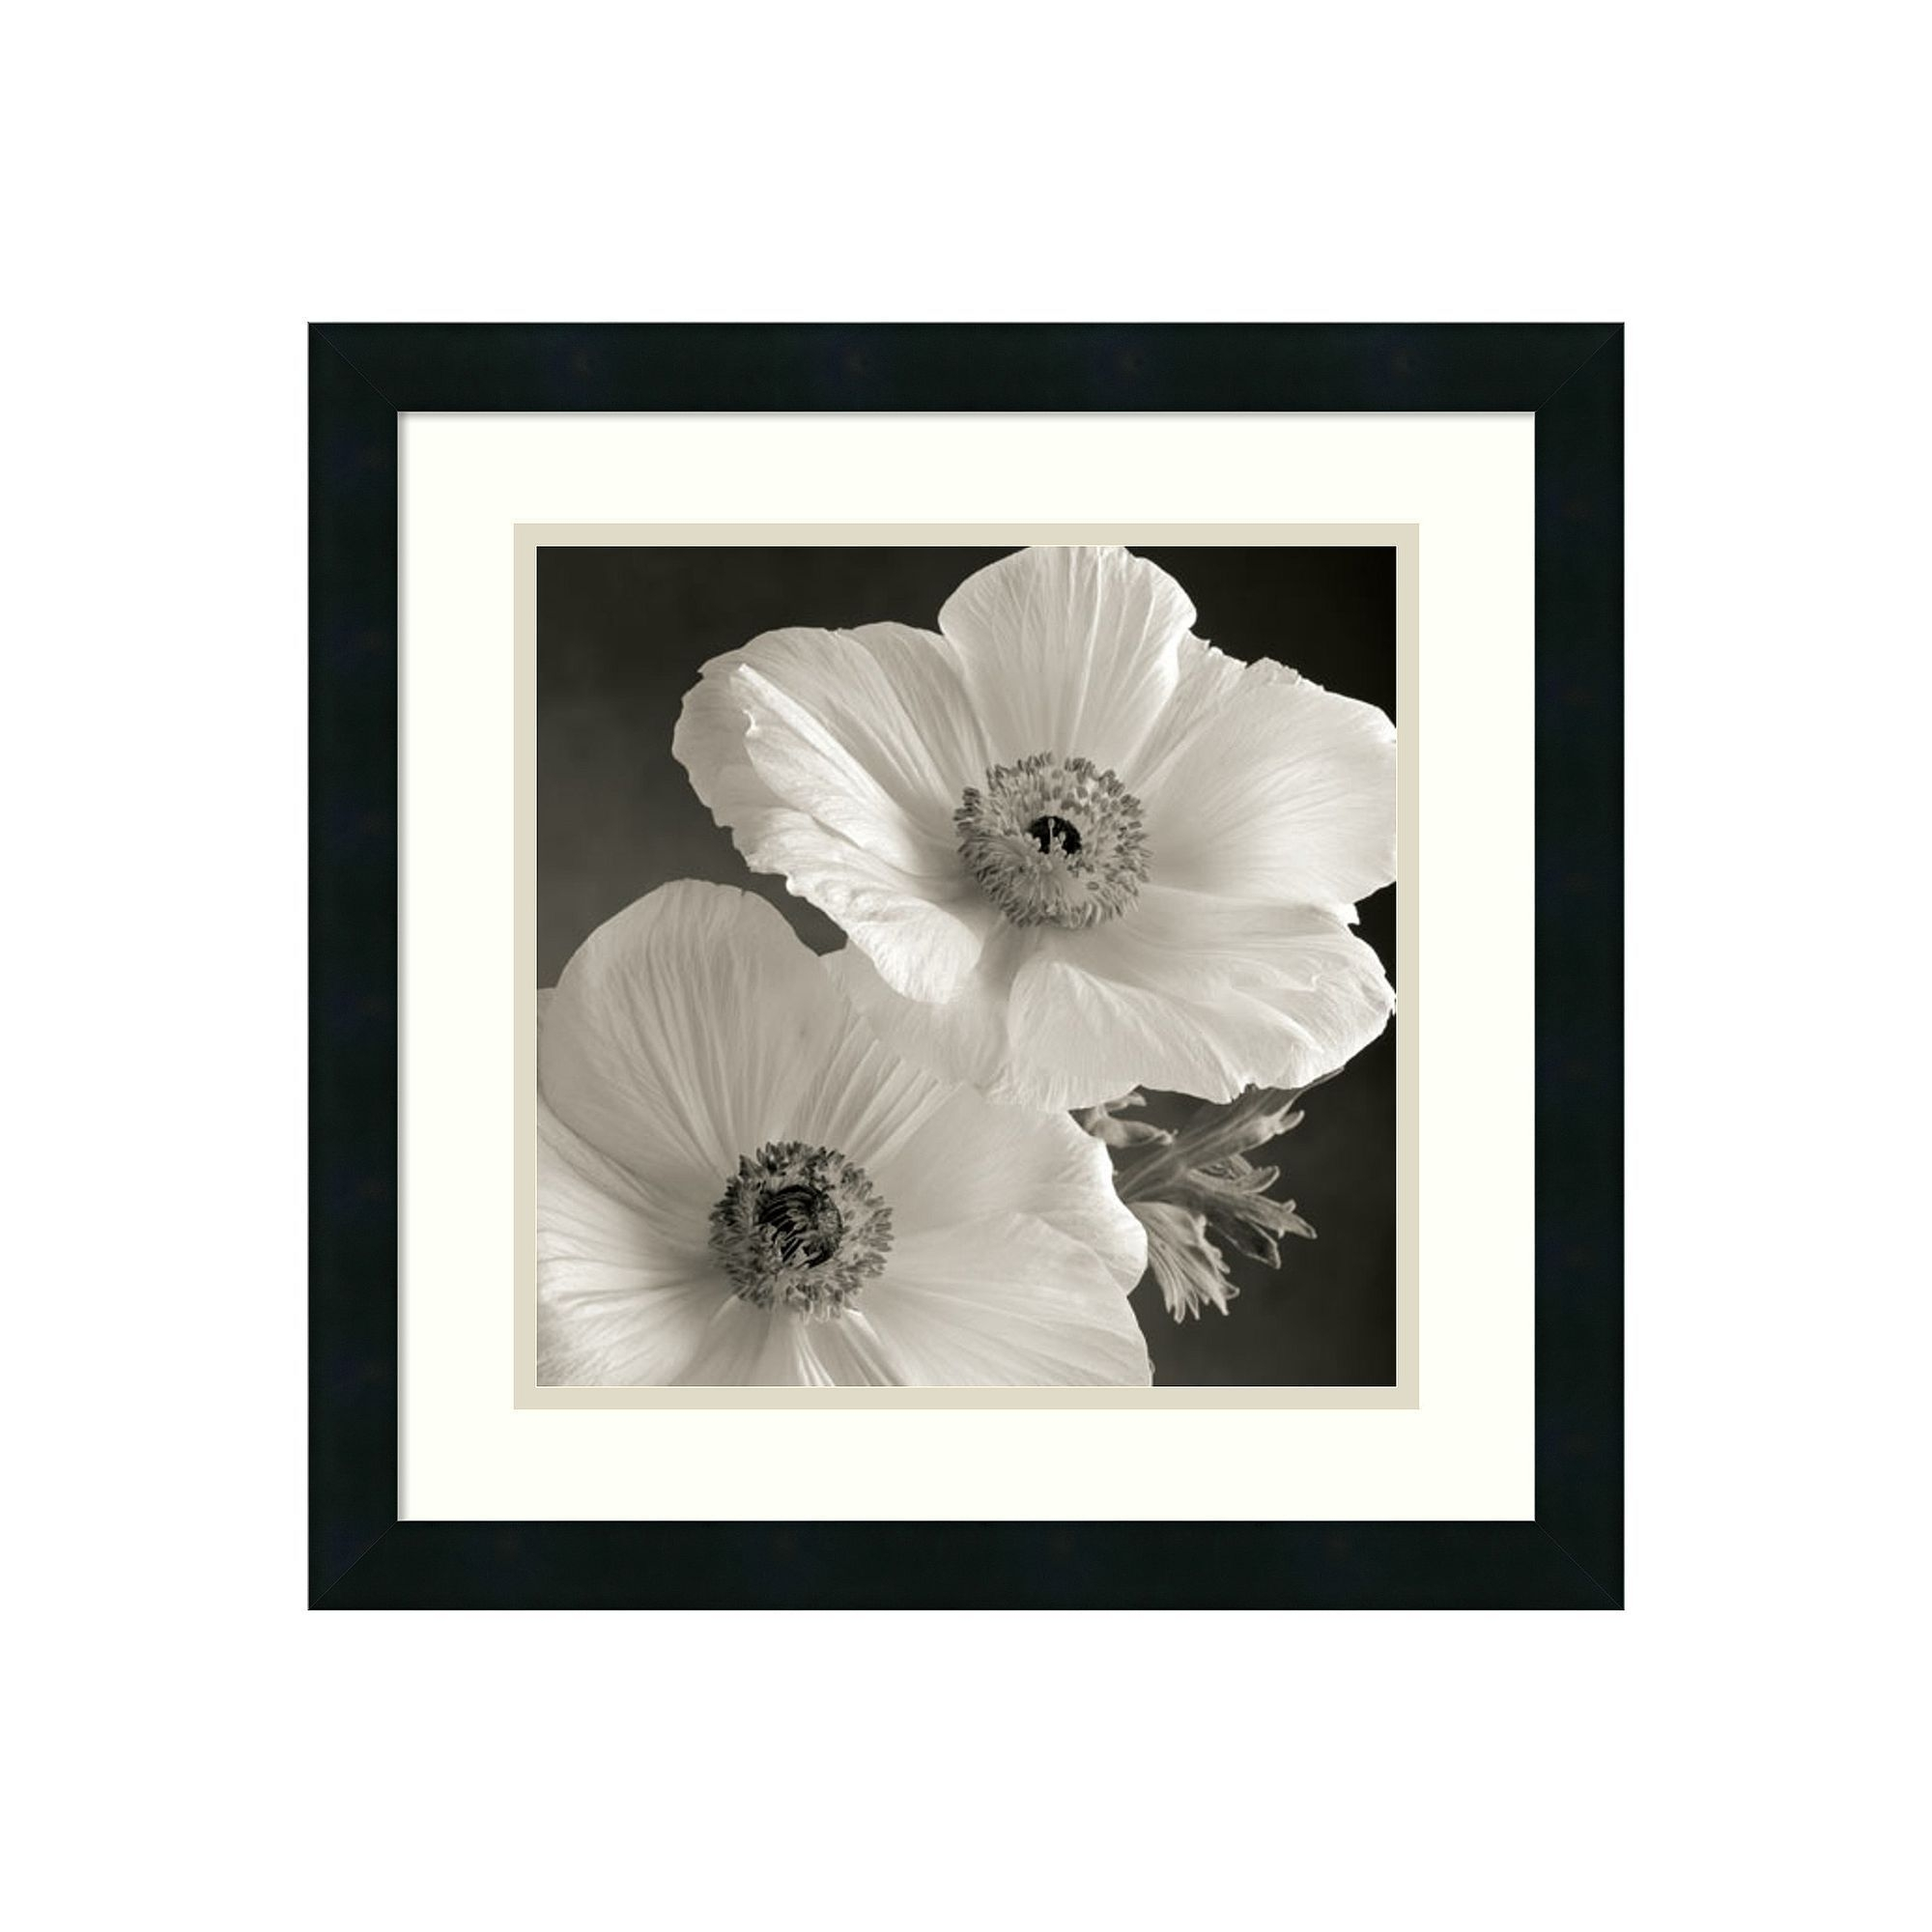 Poppy Study I'' Floral Framed Wall Art, Black | Floral, Walls And For Current Black Framed Art Prints (View 12 of 15)